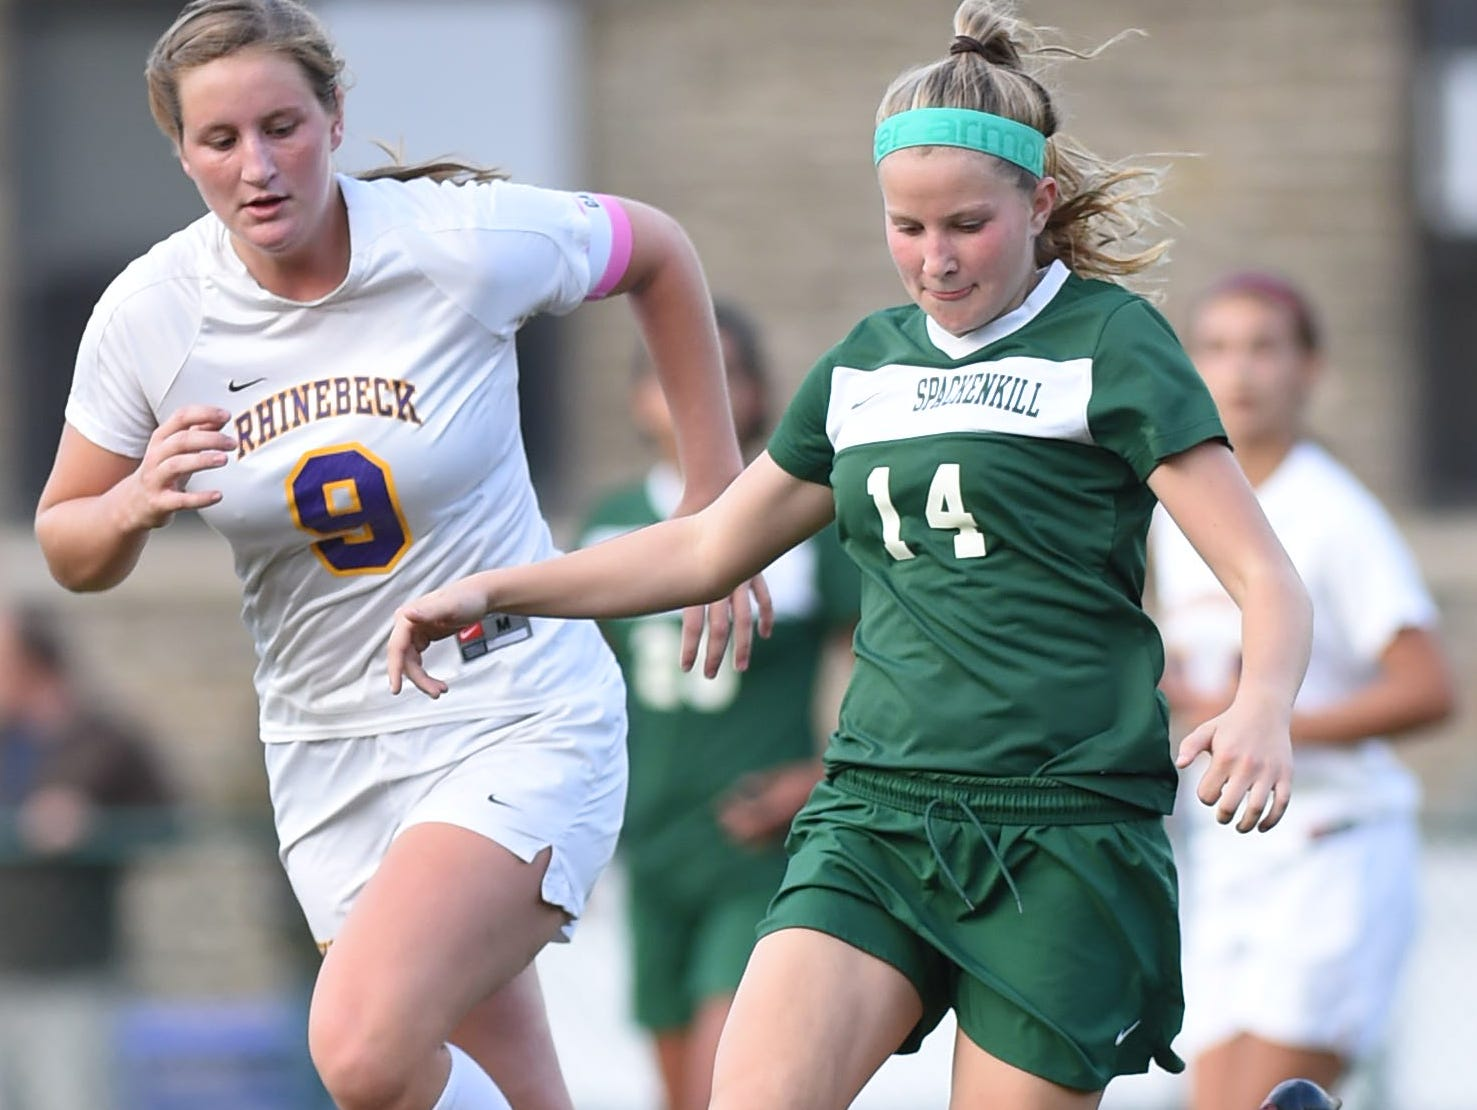 Spackenkill's Katherine Lillis keeps control of the ball ahead of Rhinebeck's Natalie Hutchins during Wednesday's game in Rhinebeck.